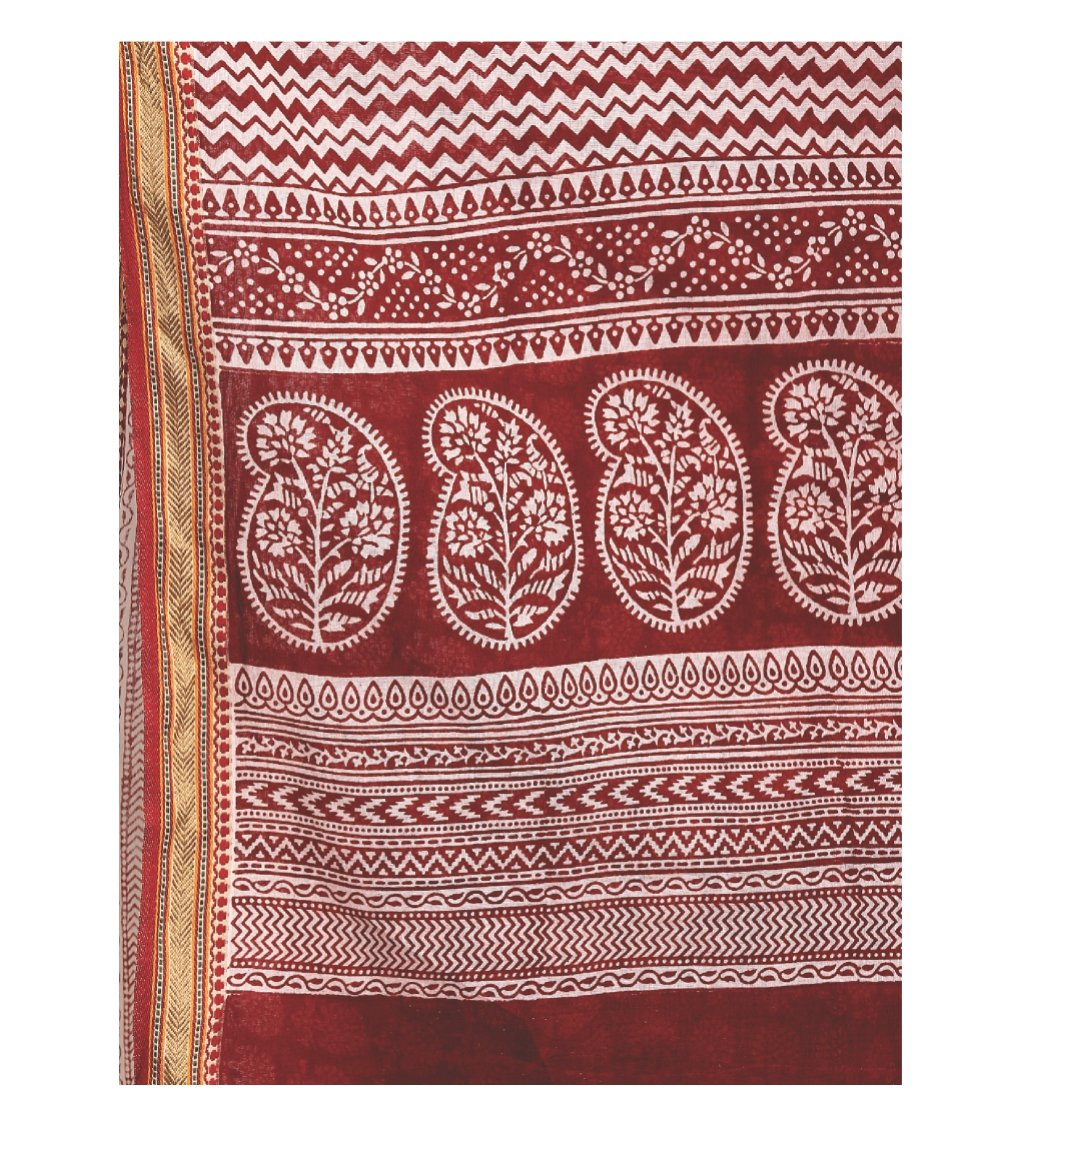 Red Cotton Hand Block Bagh Print Handcrafted Saree-Saree-Kalakari India-ZIBASA0073-Bagh, Cotton, Geographical Indication, Hand Blocks, Hand Crafted, Heritage Prints, Natural Dyes, Sarees, Sustainable Fabrics-[Linen,Ethnic,wear,Fashionista,Handloom,Handicraft,Indigo,blockprint,block,print,Cotton,Chanderi,Blue, latest,classy,party,bollywood,trendy,summer,style,traditional,formal,elegant,unique,style,hand,block,print, dabu,booti,gift,present,glamorous,affordable,collectible,Sari,Saree,printed, holi